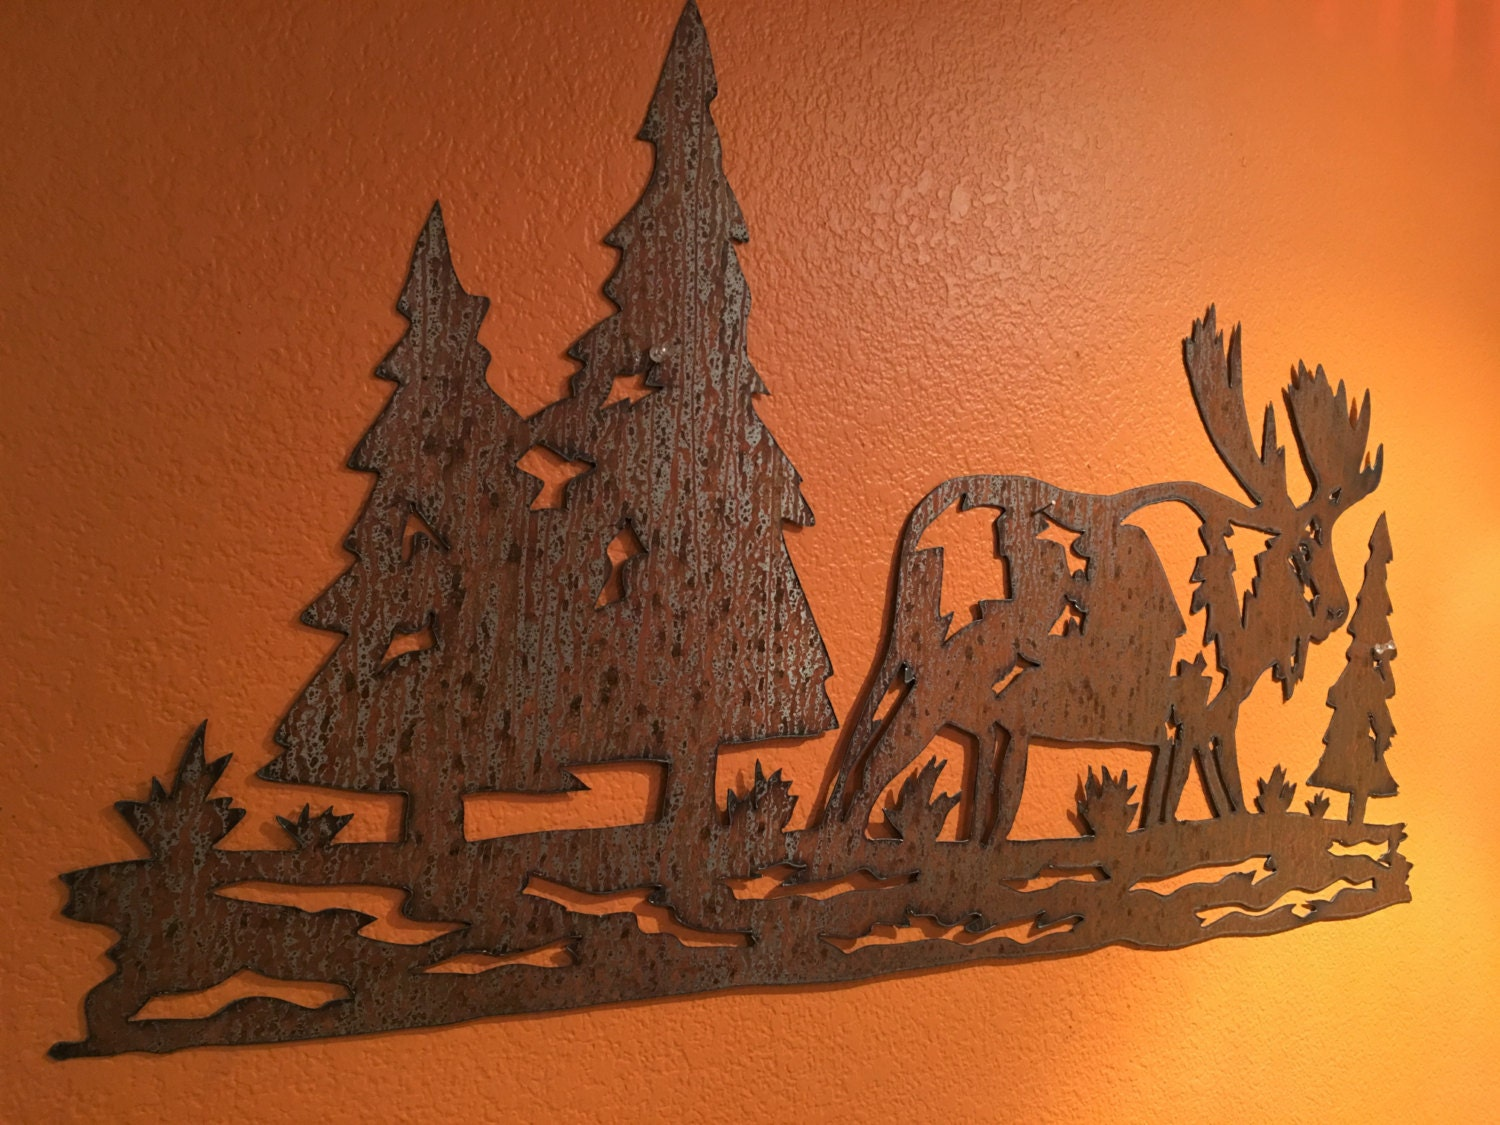 Cabin Wall Art moose decoration / rustic decor ideas / wall art / cabin decor